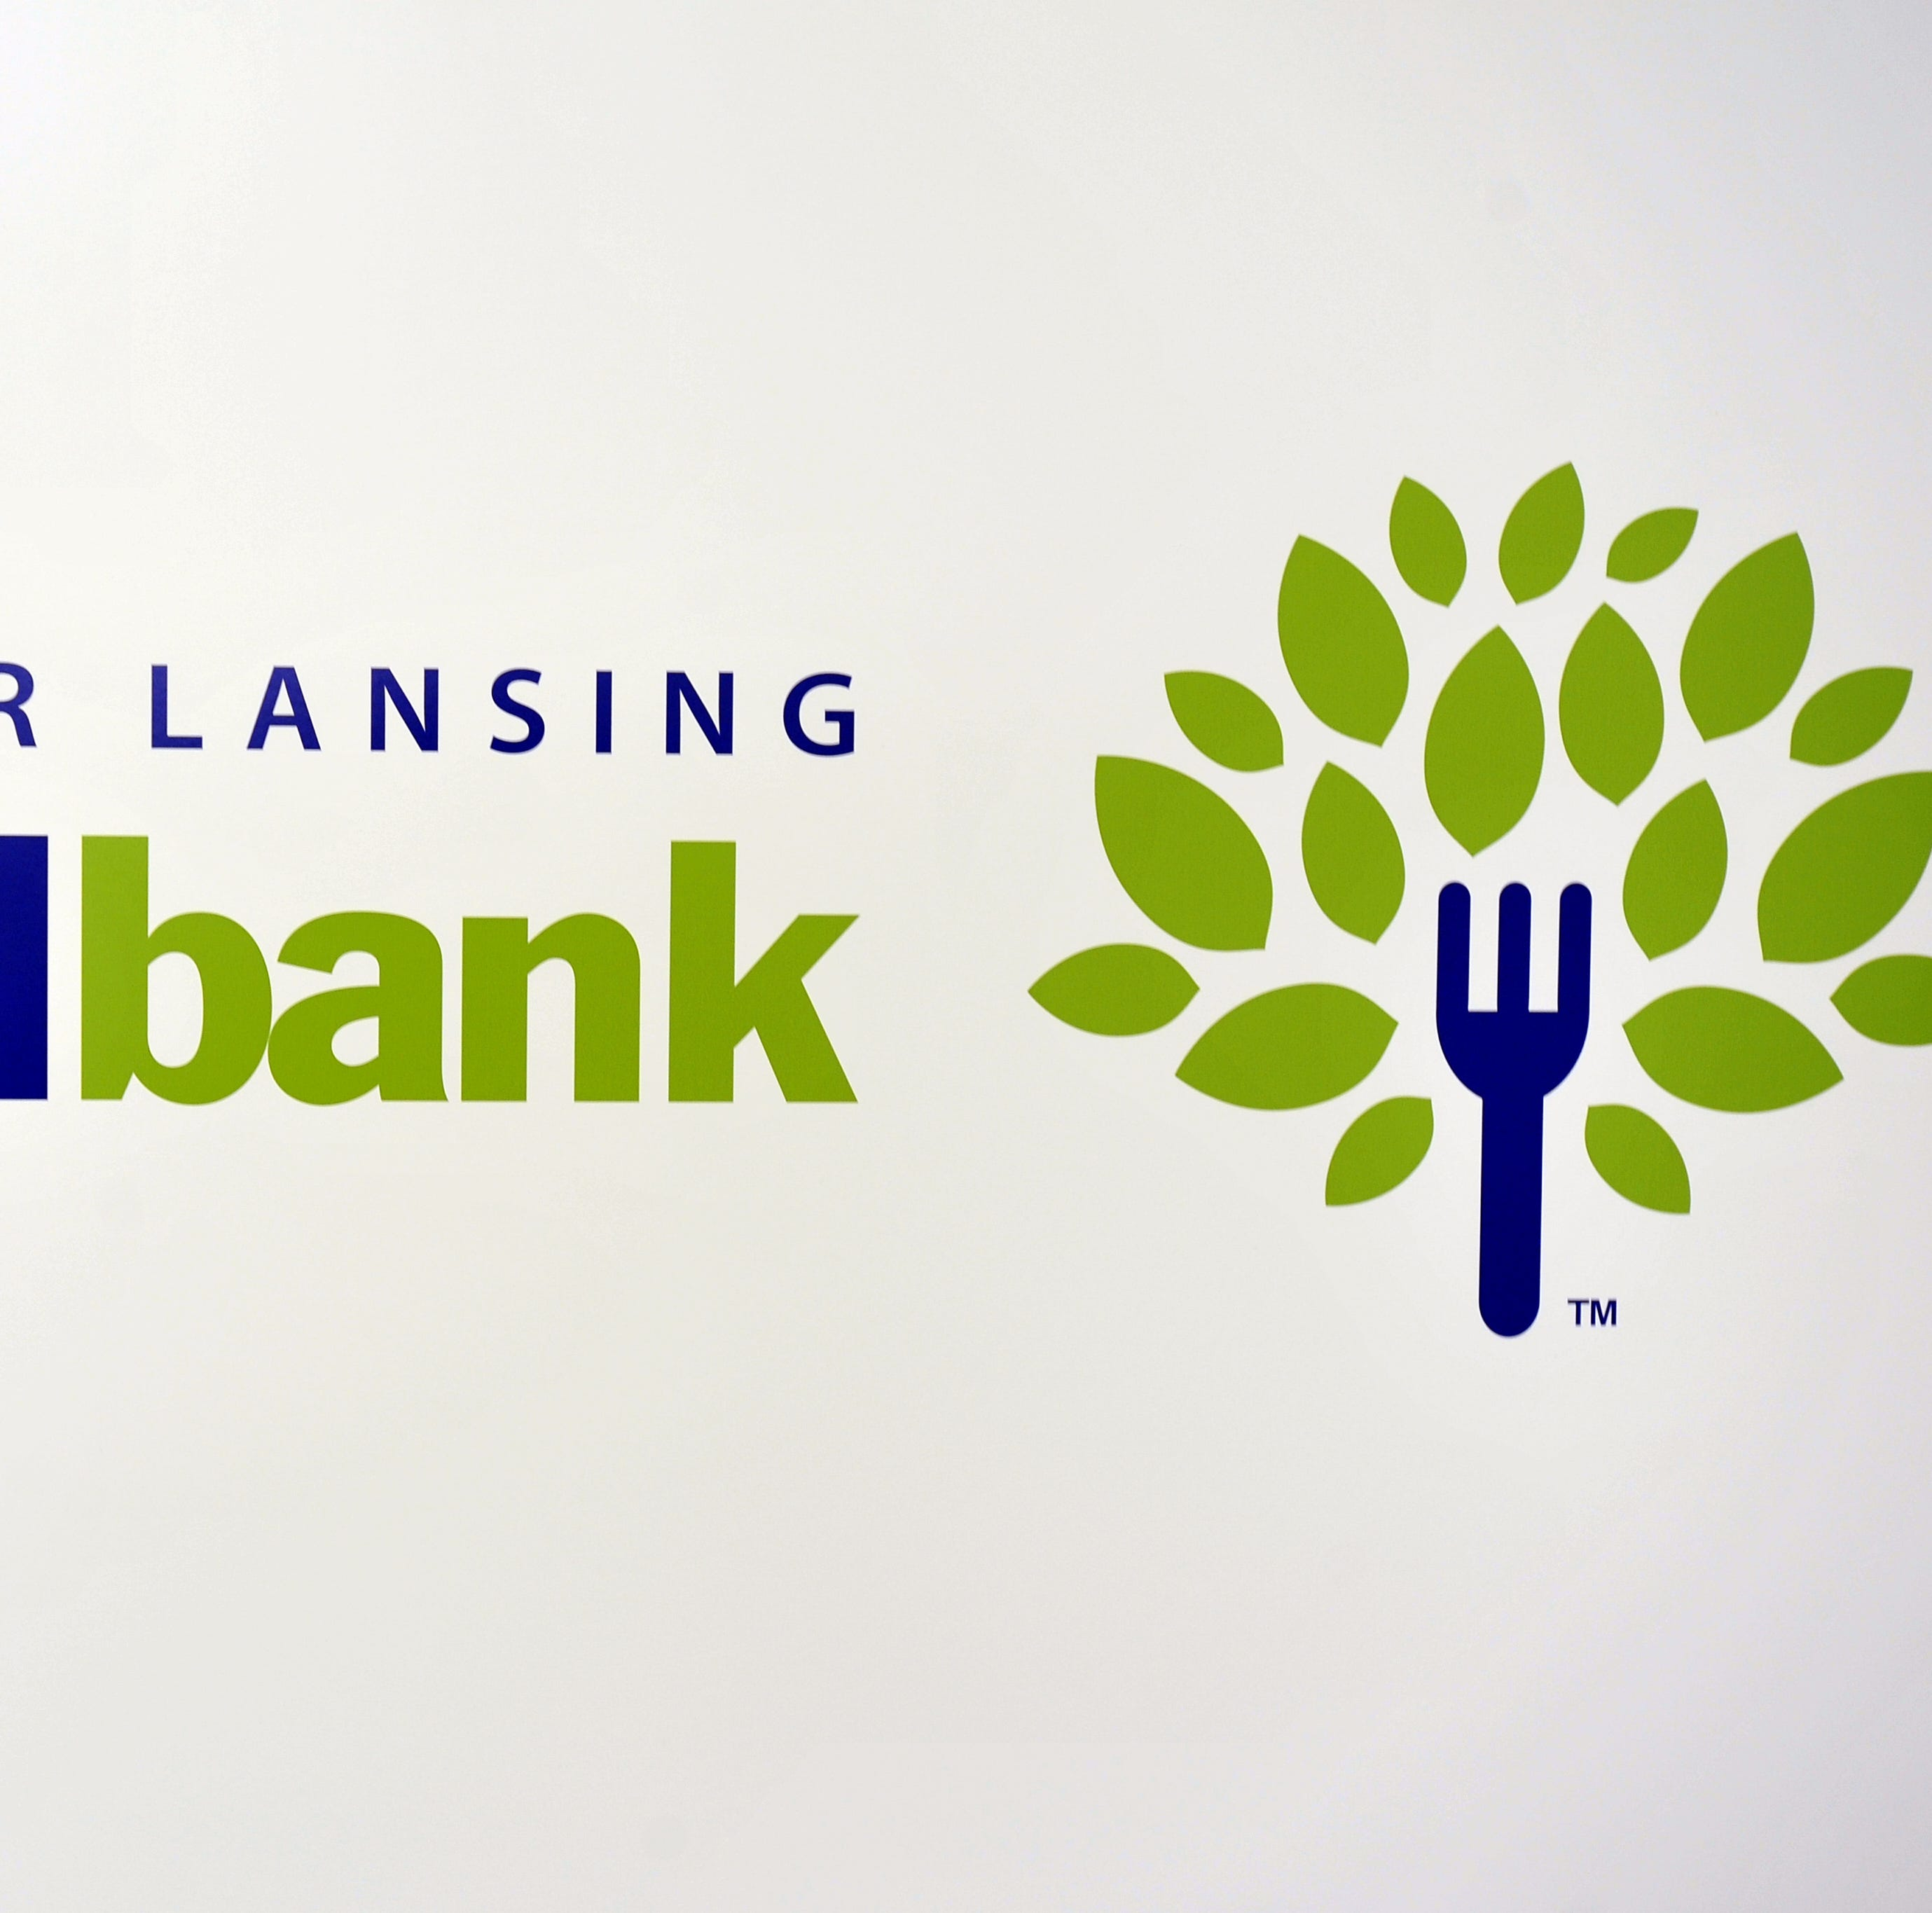 Break-in at food bank warehouse in Lansing slows food distribution in 7 counties